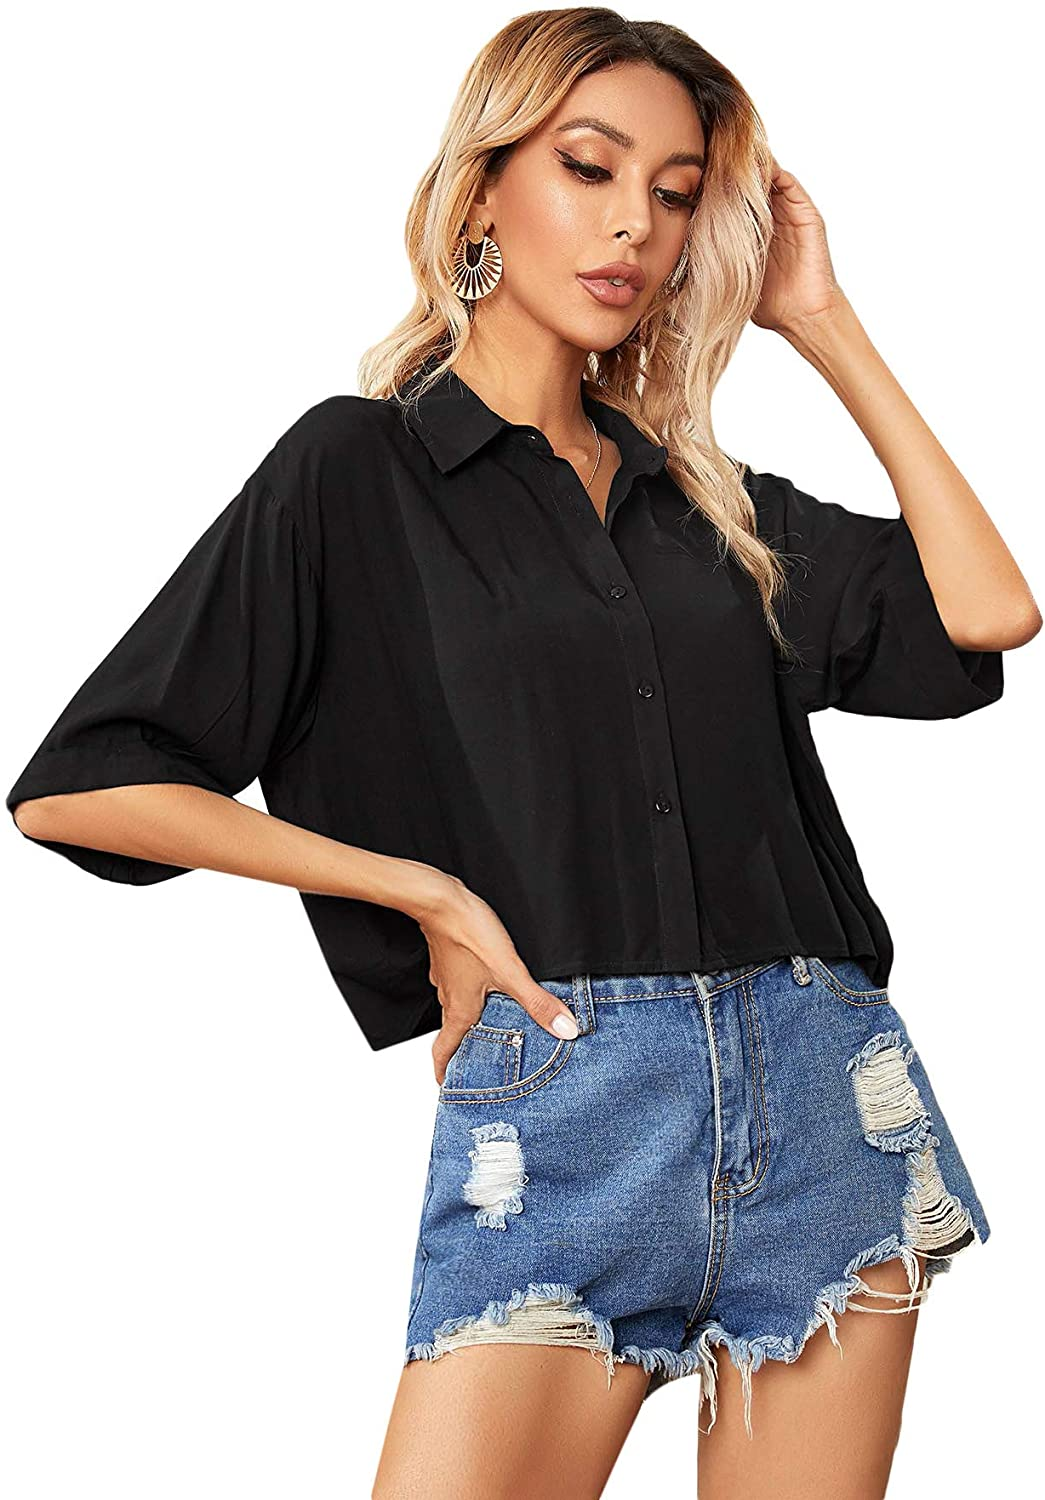 SheIn Women's Button Down Half Sleeve Crop Blouse Shirts V Neck Casual Collared Tops